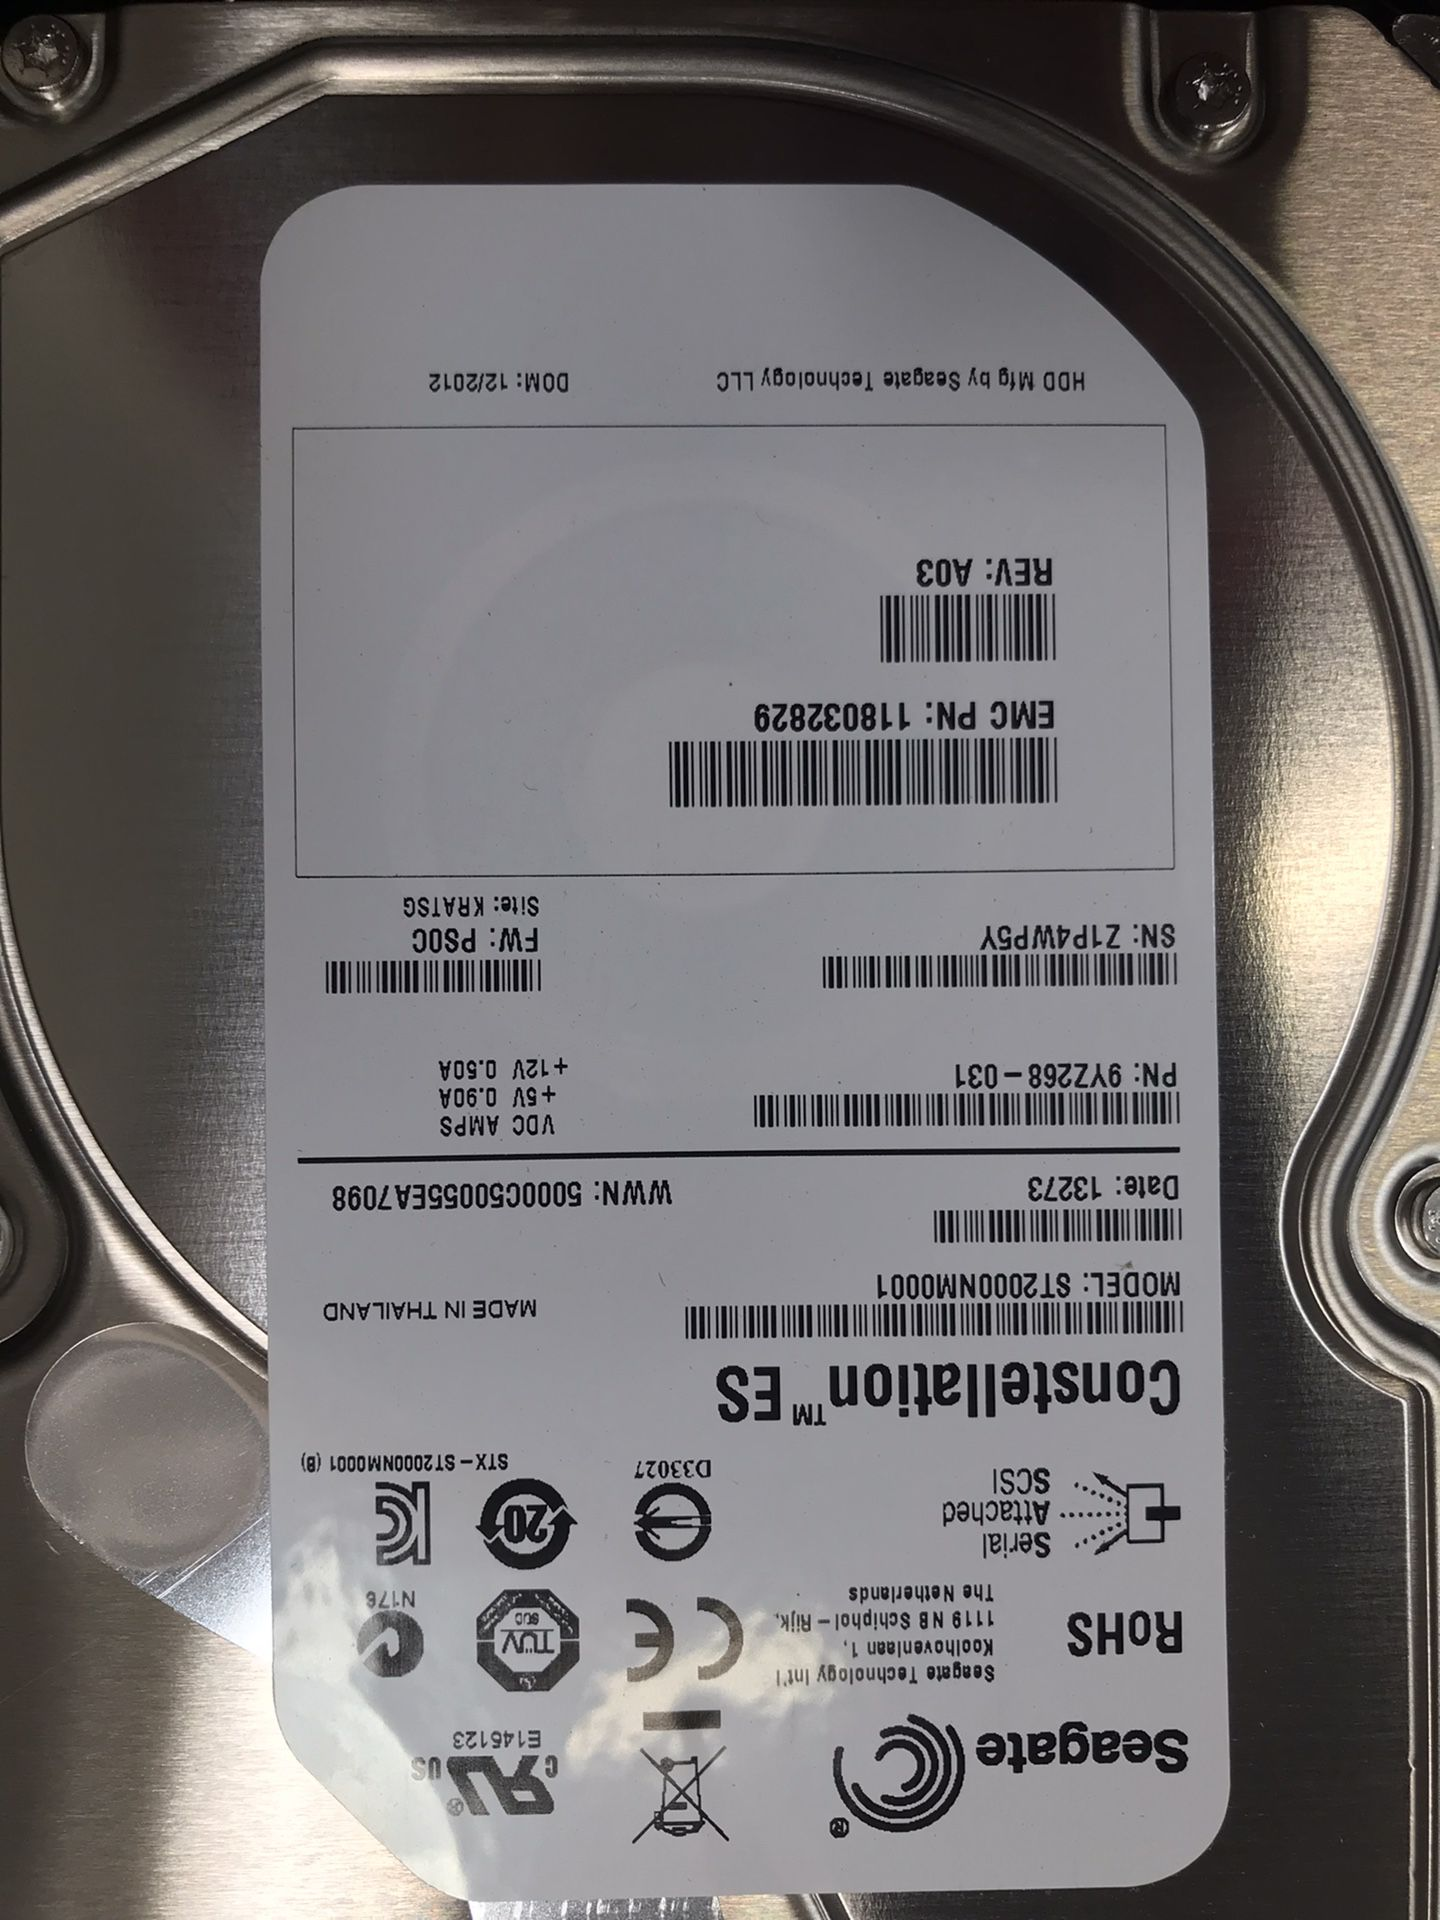 Asa hdd drives from 450gb to 2tb 370 drives all for sale